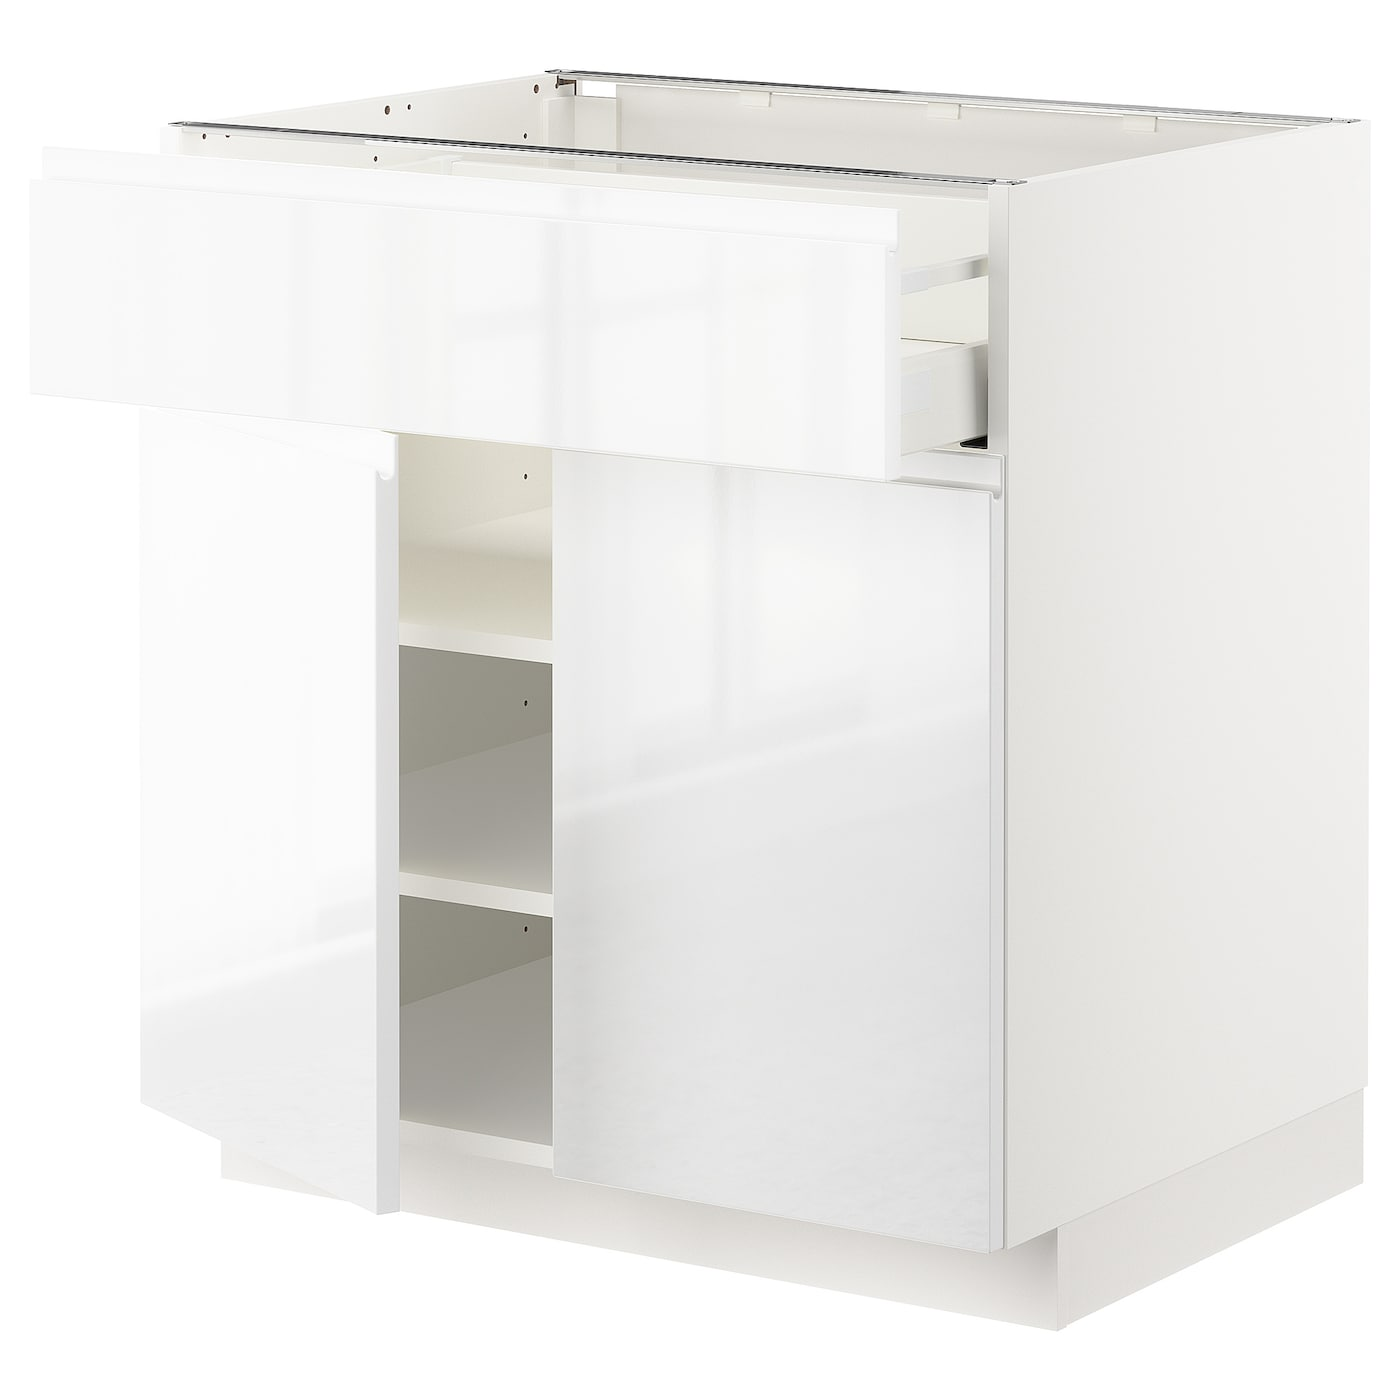 Gloss White Kitchen Cupboard Doors Best Products Seoras: METOD/MAXIMERA Base Cabinet With Drawer/2 Doors White